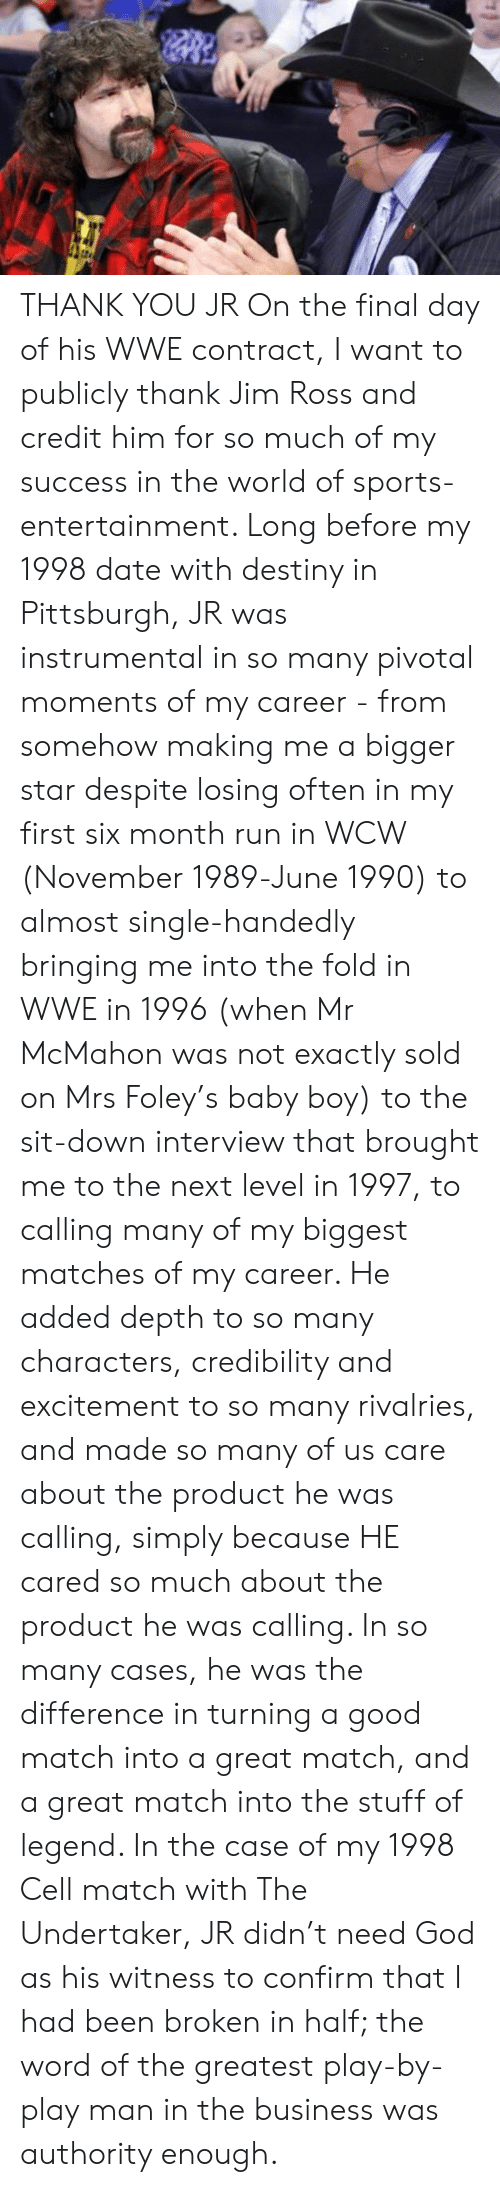 fold: THANK YOU JR  On the final day of his WWE contract, I want to publicly thank Jim Ross and credit him for so much of my success in the world of sports-entertainment. Long before my 1998 date with destiny in Pittsburgh, JR was instrumental in so many pivotal moments of my career - from somehow making me a bigger star despite losing often in my first six month run in WCW (November 1989-June 1990) to almost single-handedly bringing me into the fold in WWE in 1996 (when Mr McMahon was not exactly sold on Mrs Foley's baby boy) to the sit-down interview that brought me to the next level in 1997, to calling many of my biggest matches of my career. He added depth to so many characters, credibility and excitement to so many rivalries, and made so many of us care about the product he was calling, simply because HE cared so much about the product he was calling. In so many cases, he was the difference in turning a good match into a great match, and a great match into the stuff of legend. In the case of my 1998 Cell match with The Undertaker, JR didn't need God as his witness to confirm that I had been broken in half; the word of the greatest play-by-play man in the business was authority enough.